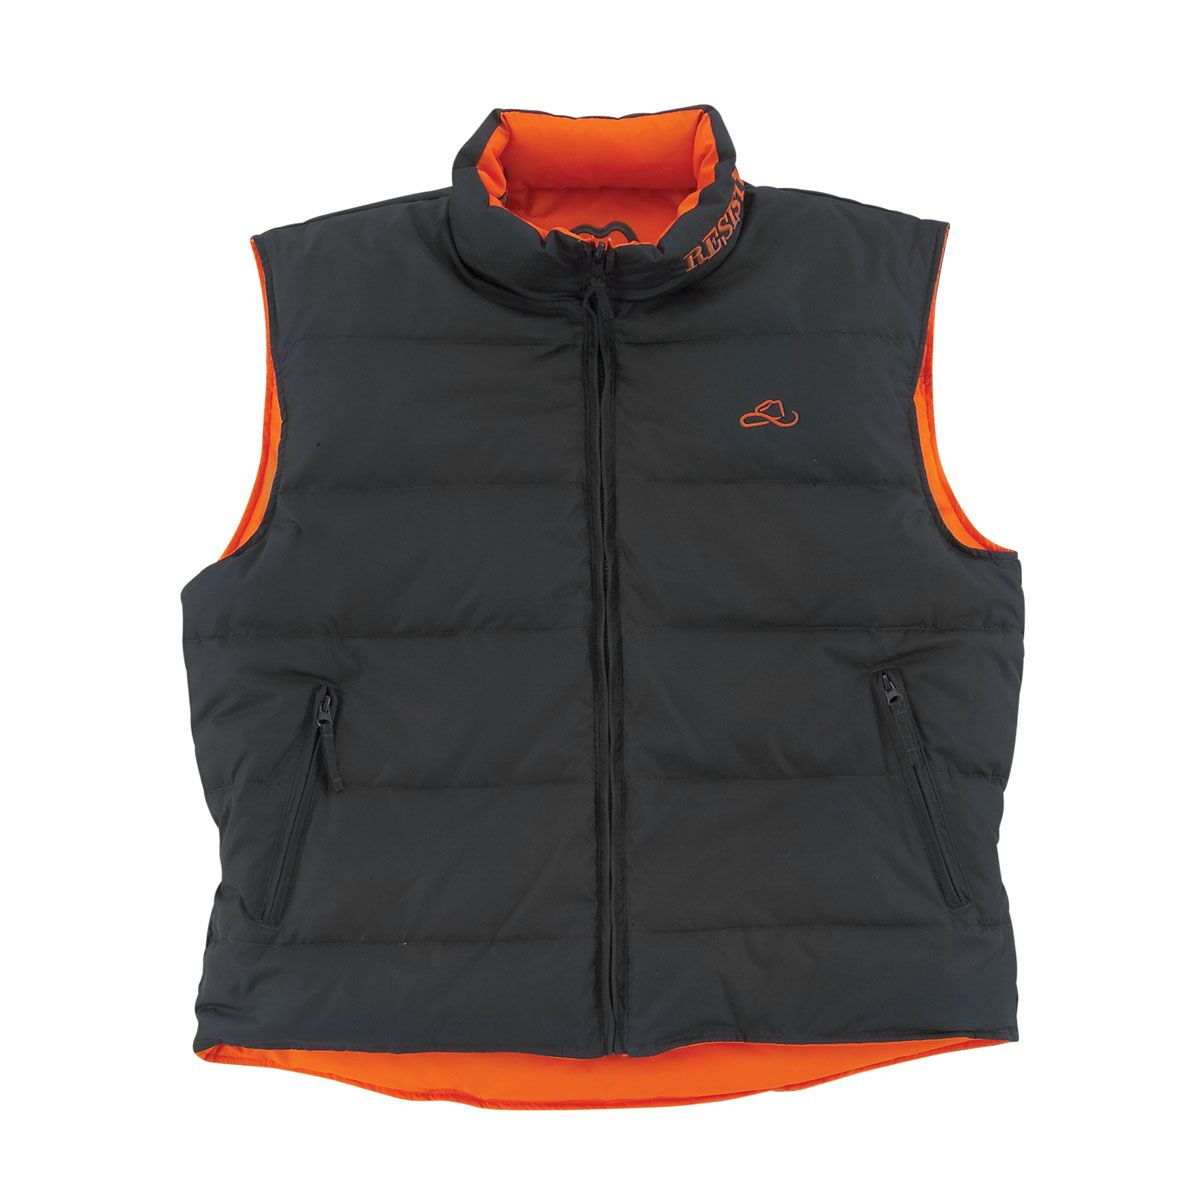 Resistol Men's Branded Down 2-Sided Vest - Orange/Grey